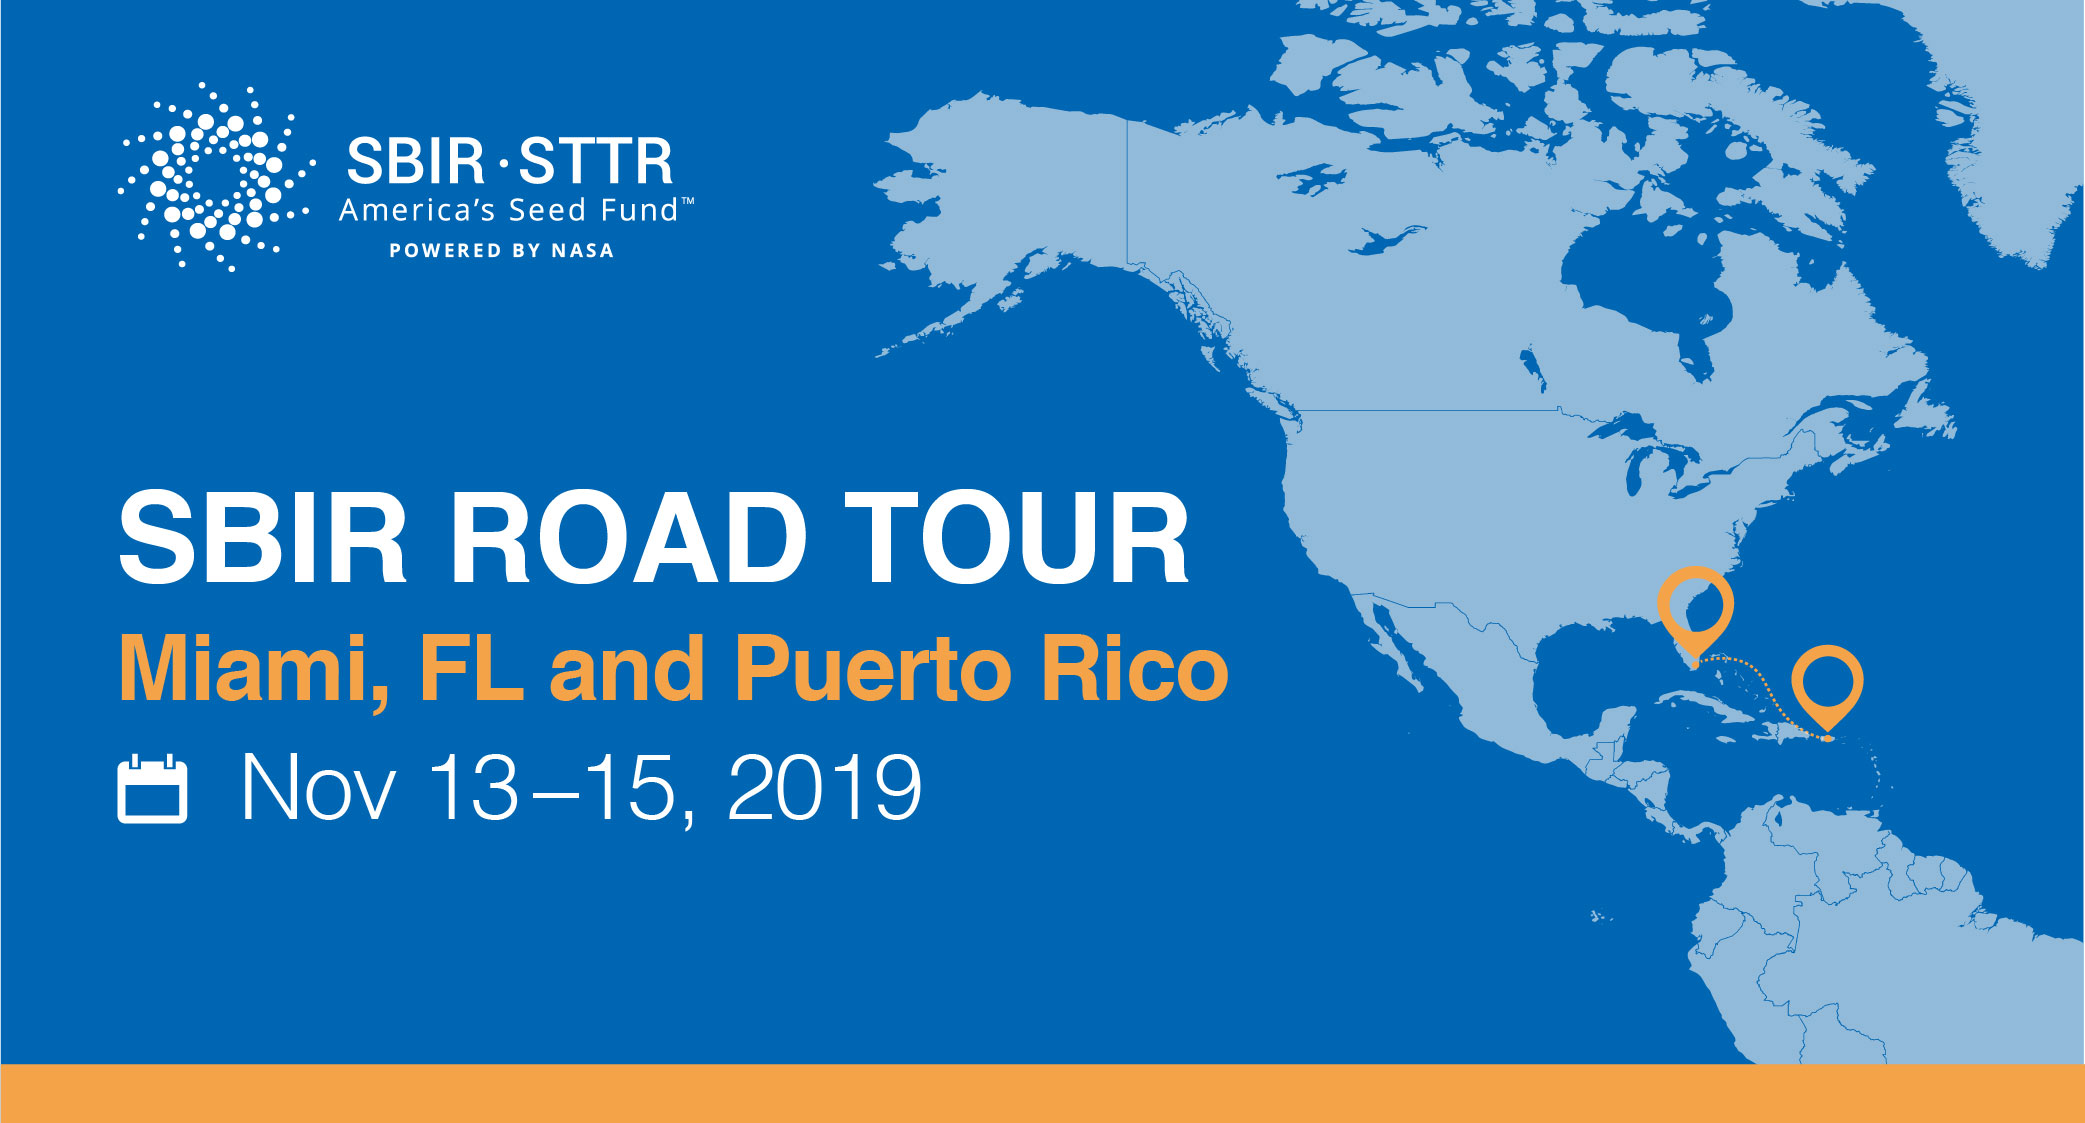 SBIR Road Tour: Miami, FL and Puerto Rico